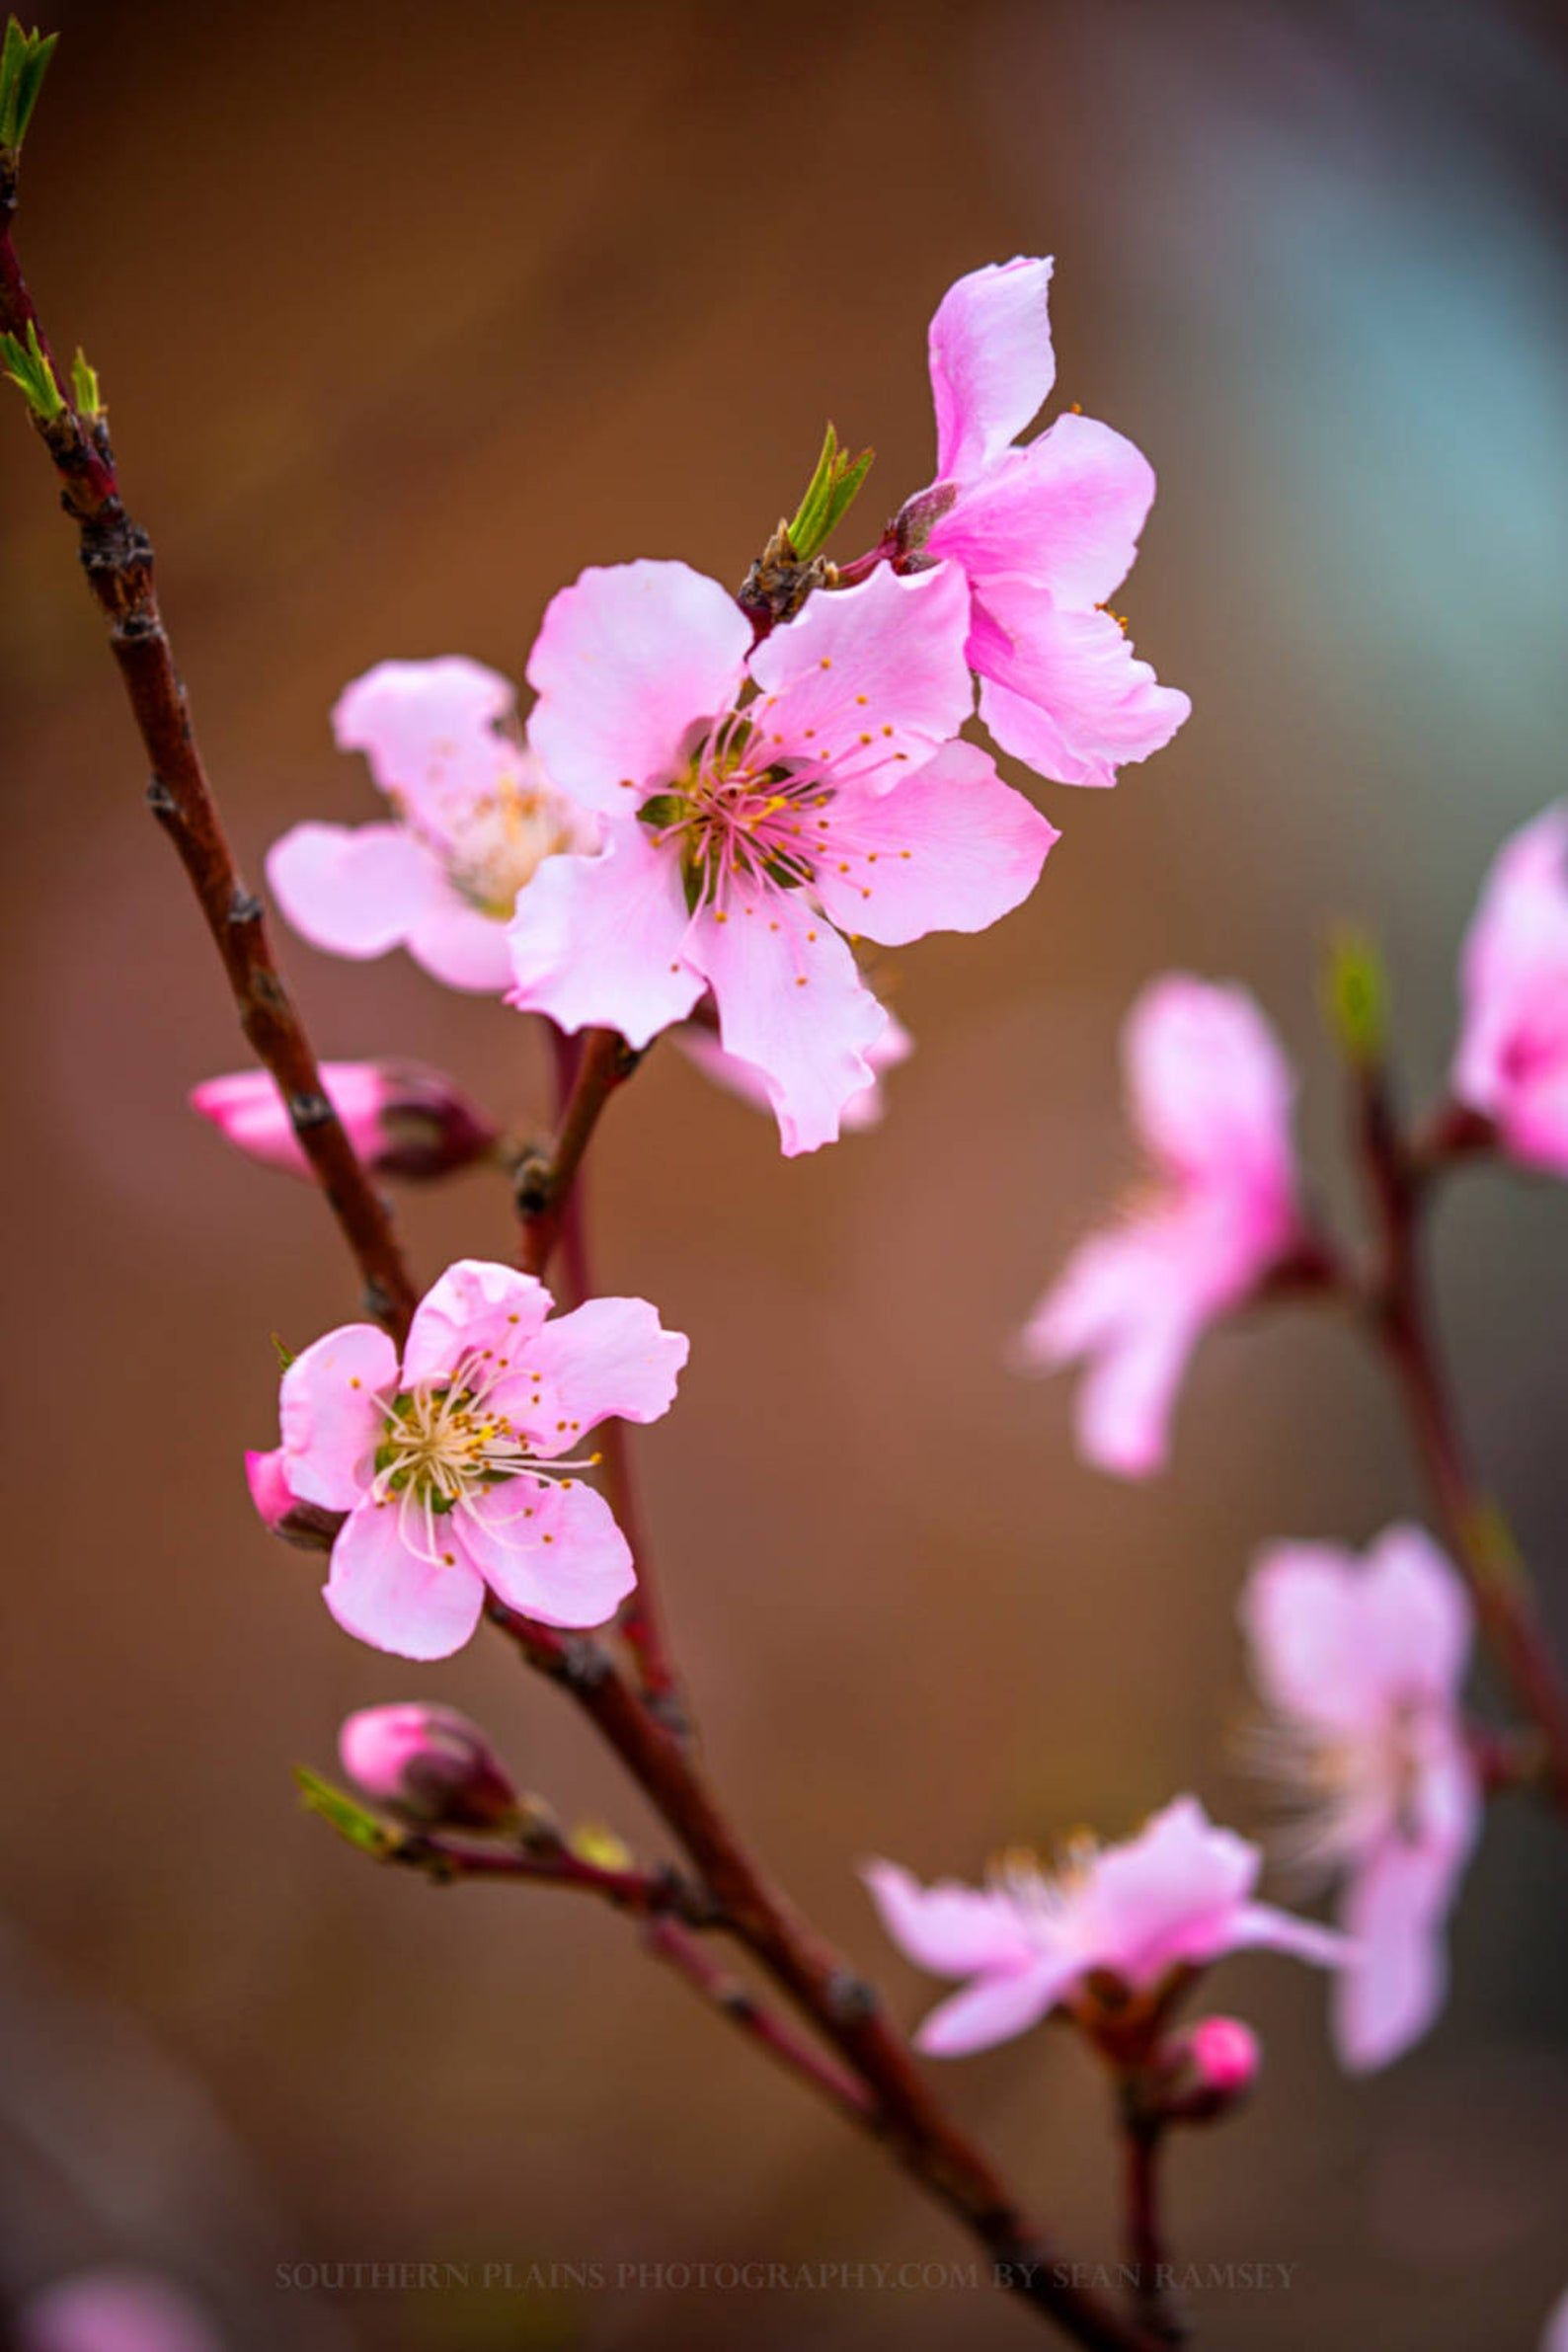 Floral Photography Print Vertical Picture Of Pink Peach Blossoms On Spring Day In Oklahoma Nature Flower Photo Artwork Decor In 2021 Floral Photography Peach Blossoms Wildflowers Photography